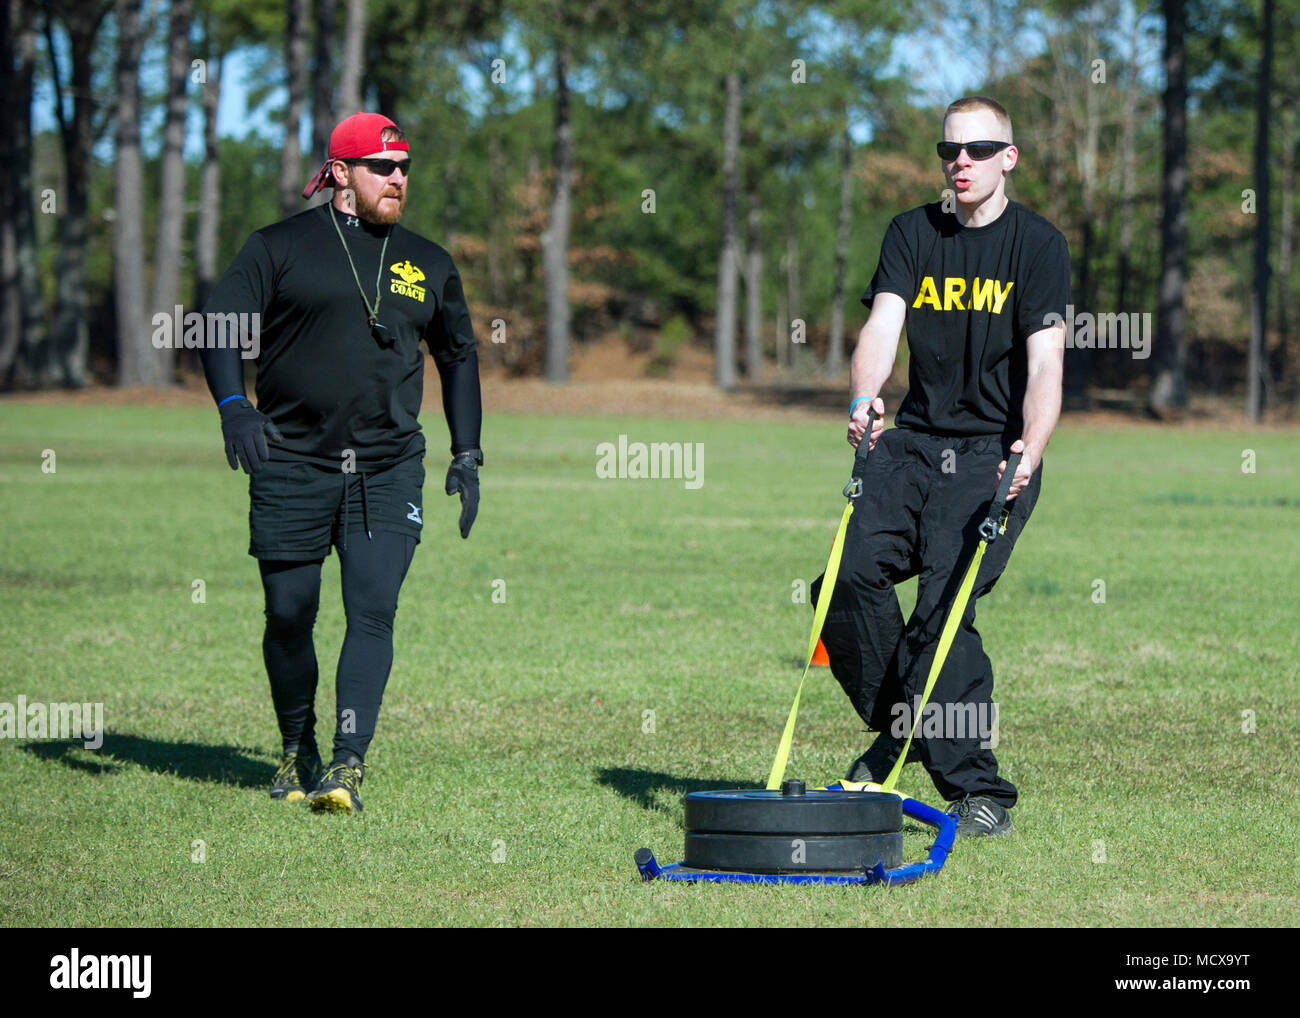 Coach Ron Doiron with the South Carolina National Guard Warrior Fitness Program demonstrates the proposed Army Combat Readiness Test (ACRT) at McCrady Training Center, Eastover, South Carolina, Mar. 4, 2018. (U.S. Army National Guard photo by Sgt. Brian Calhoun, 108th Public Affairs Detachment) - Stock Image